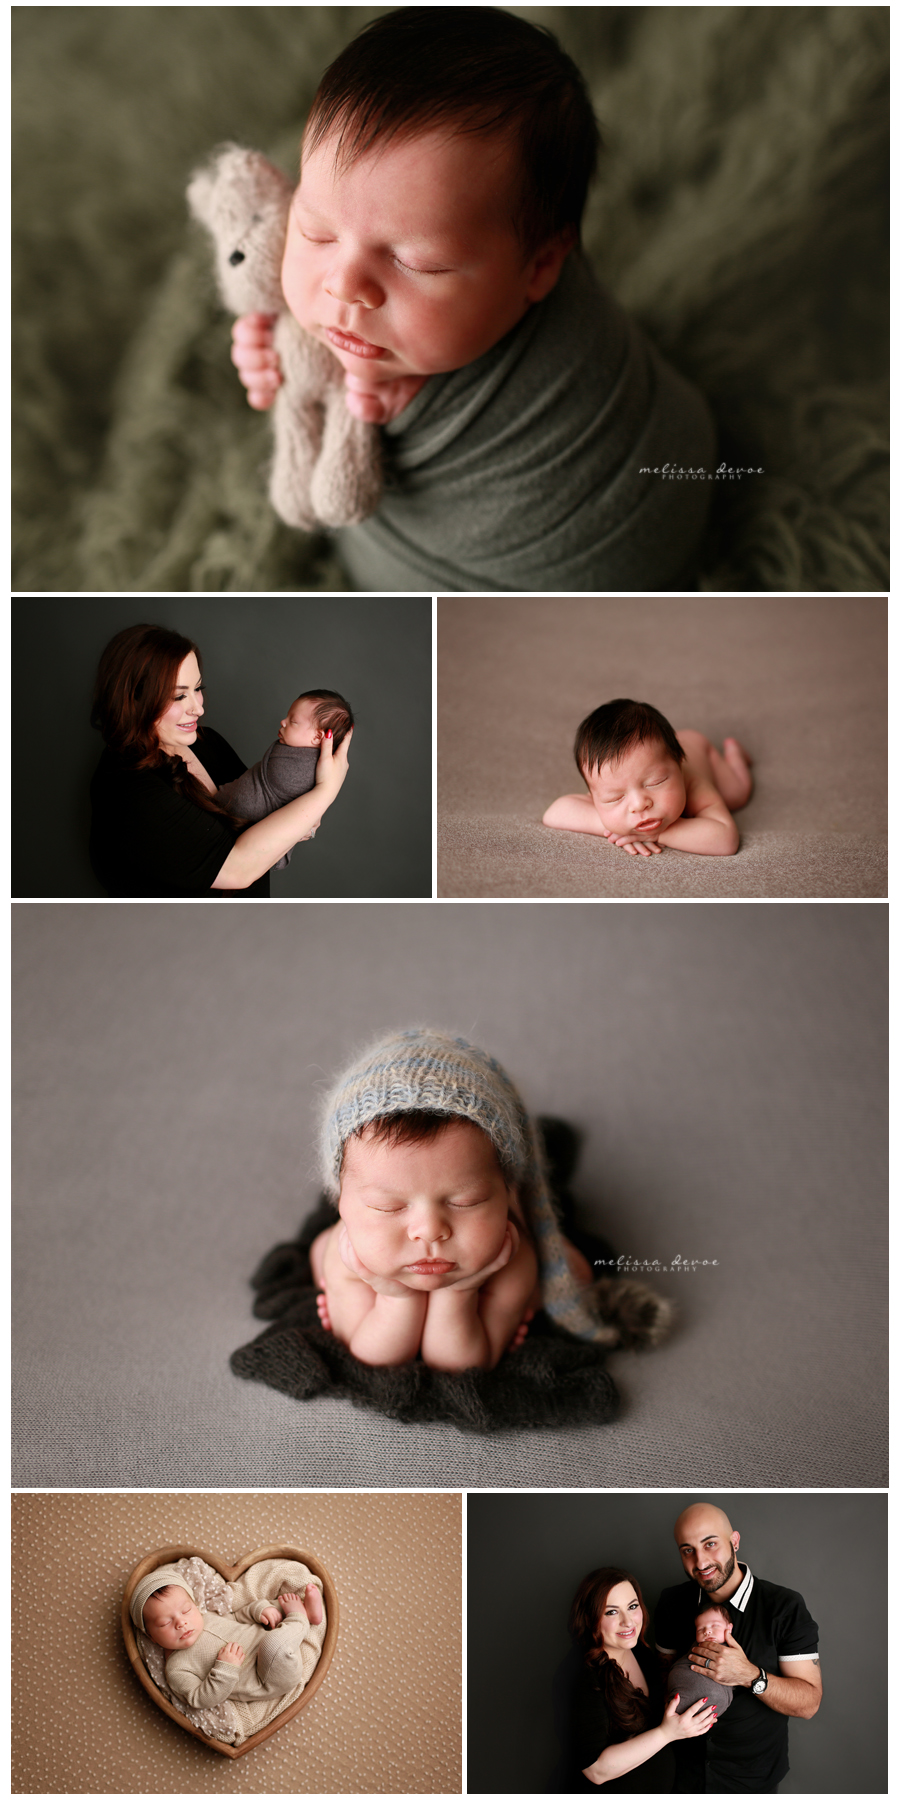 Baby Photographer in Raleigh Wake Forest NC Melissa DeVoe